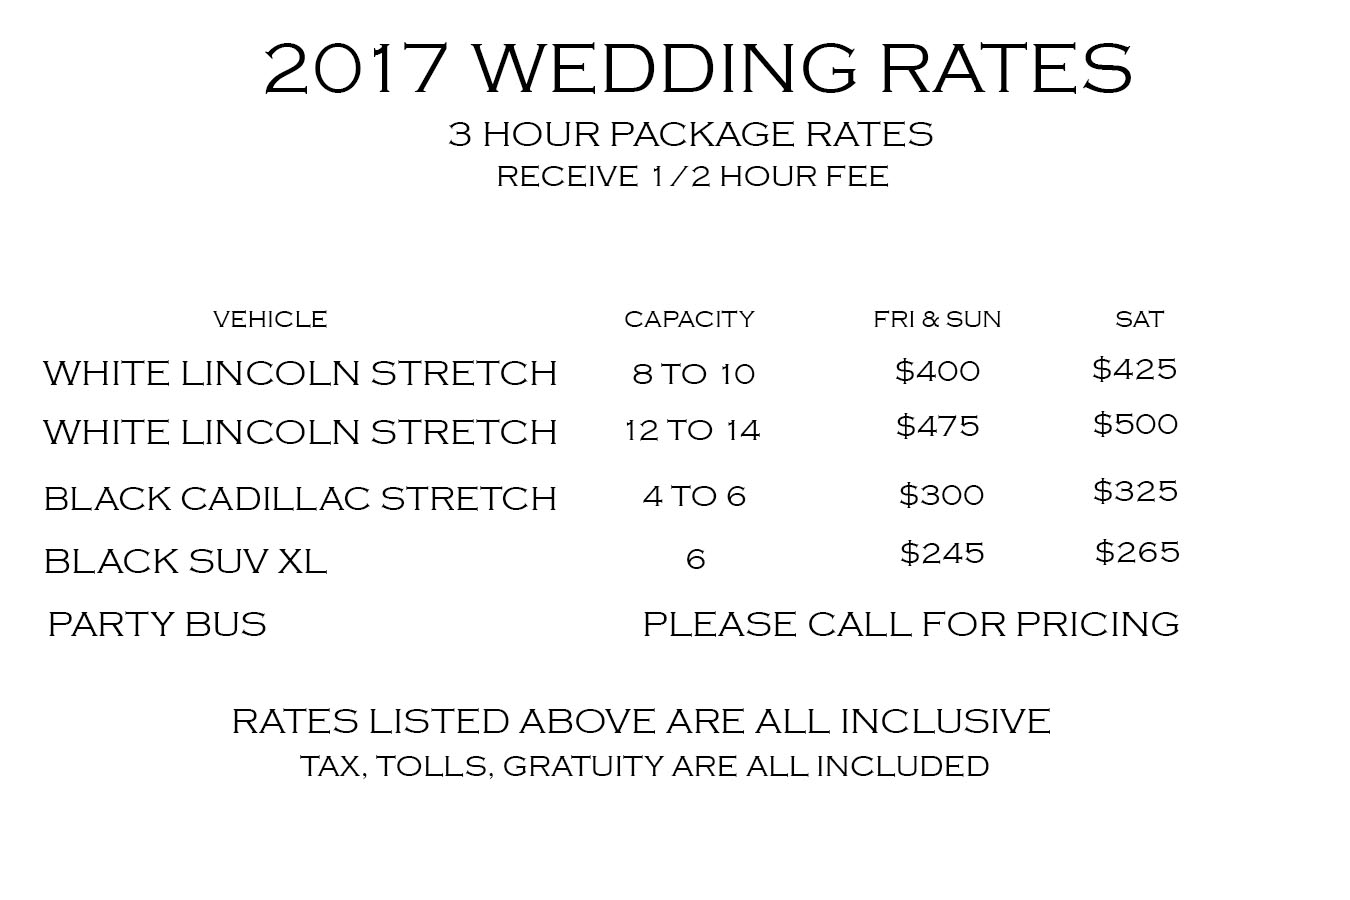 Wedding Rates for 2017